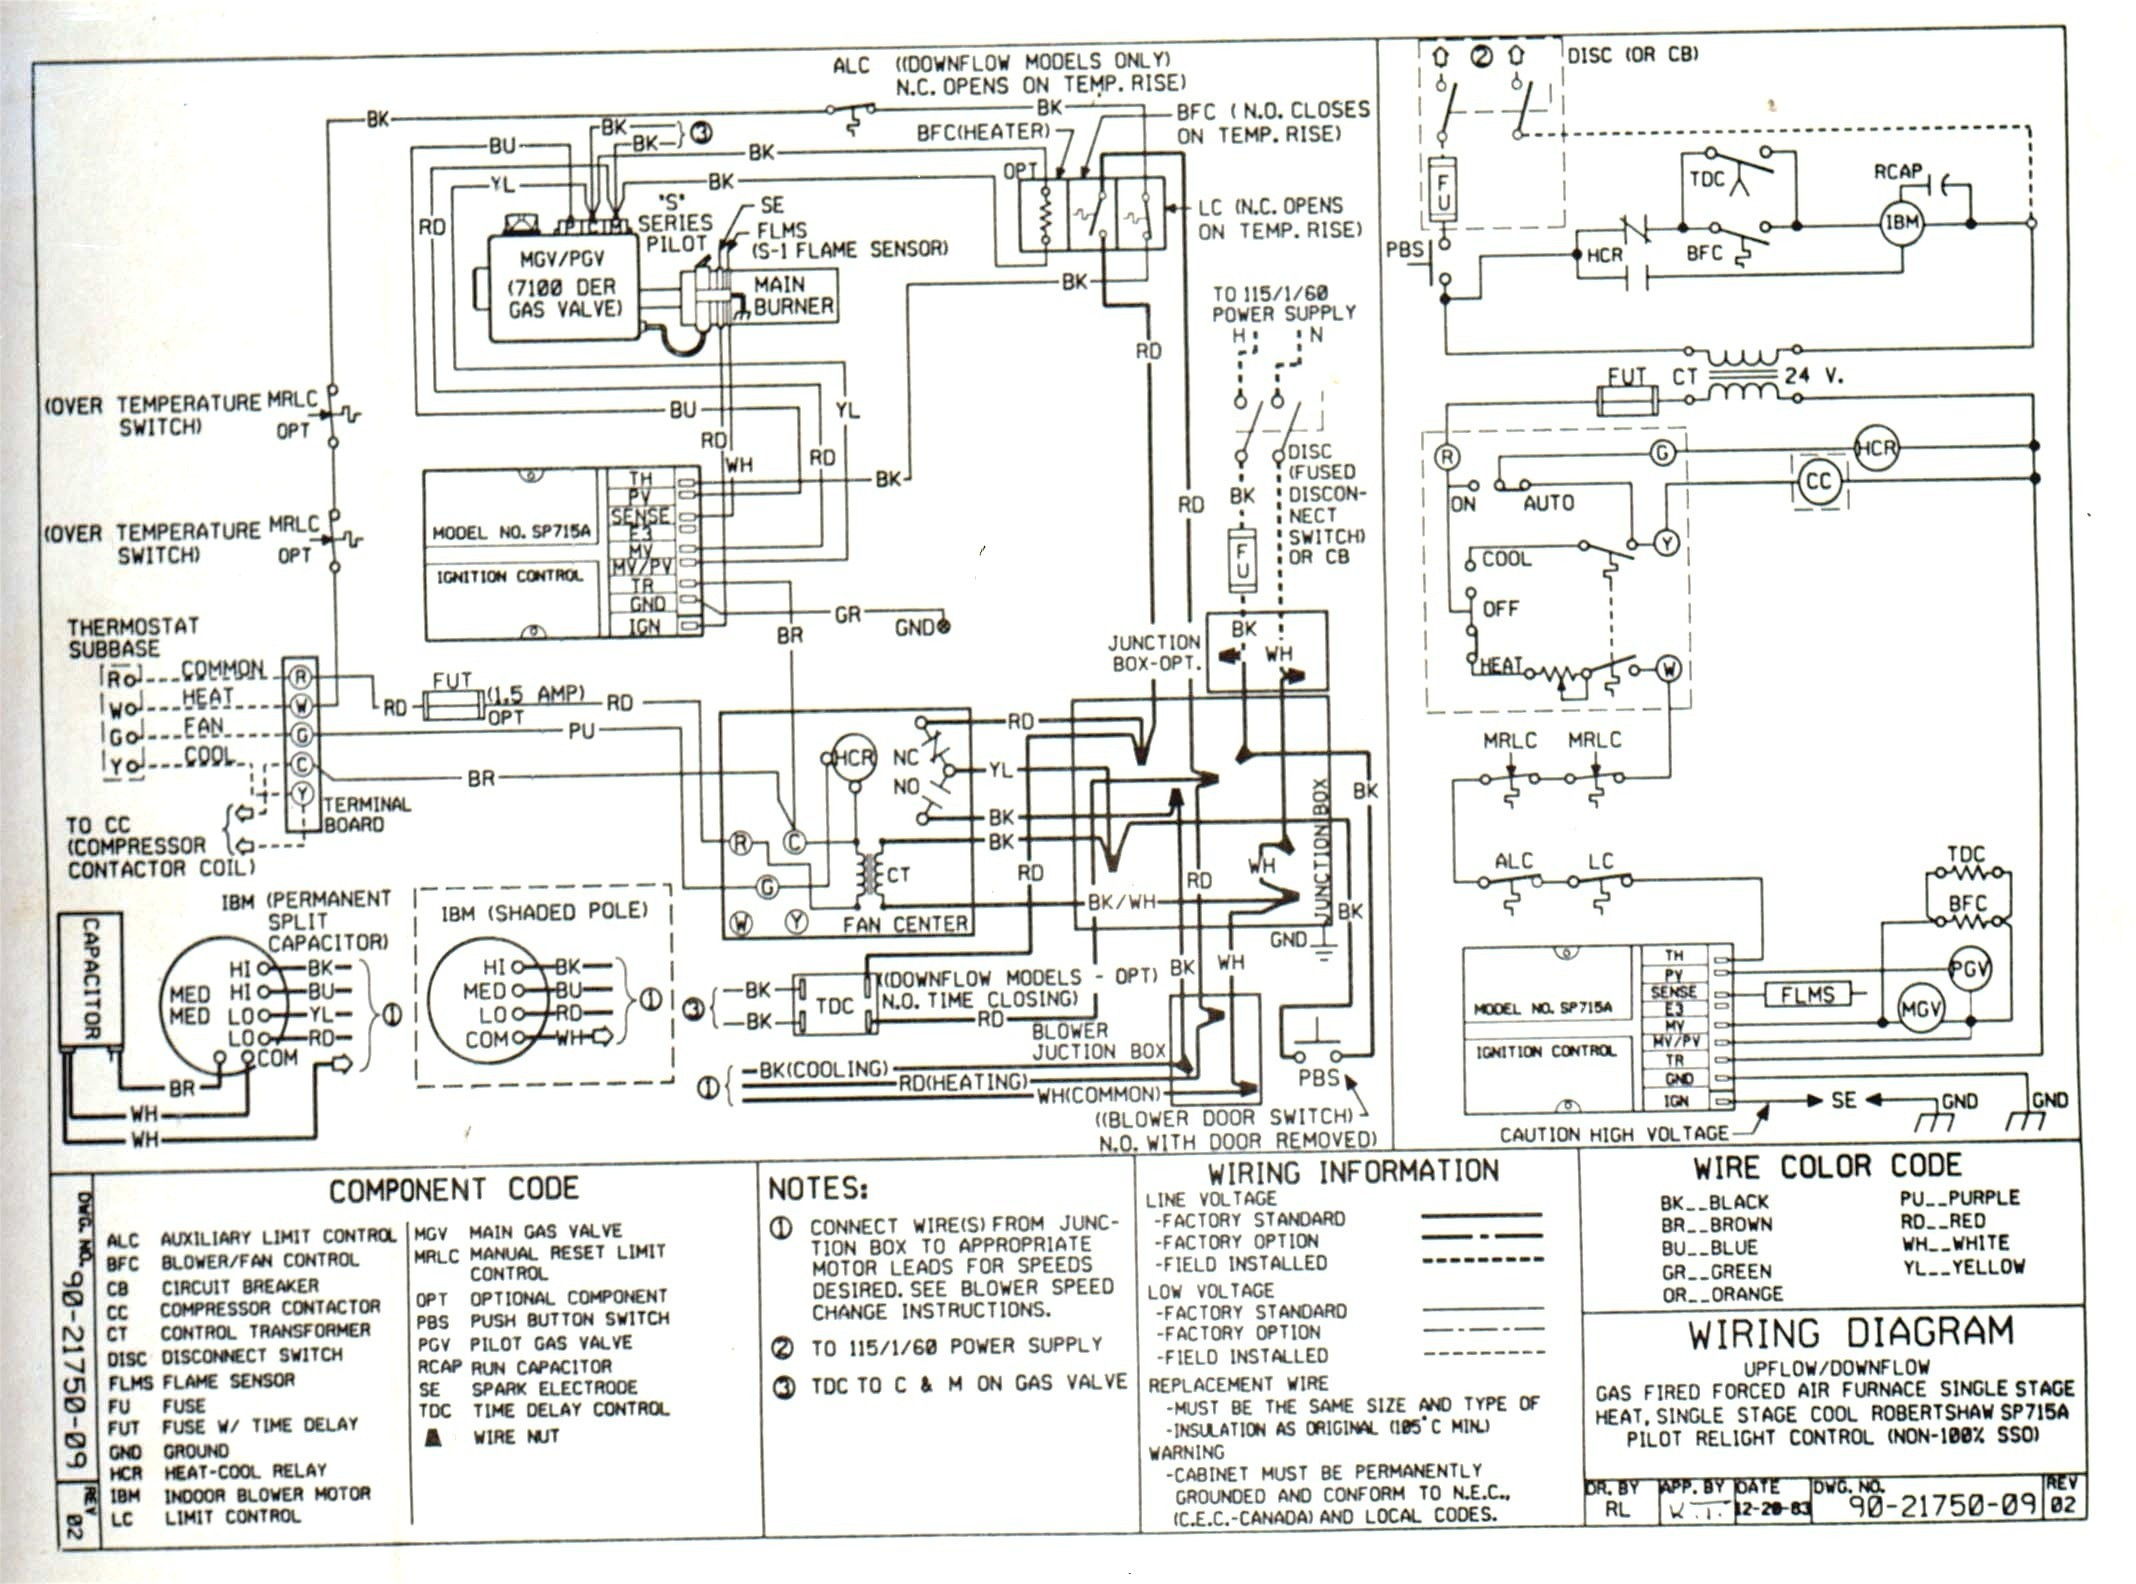 heat york diagram n wiring pump ahc1606a wiring diagram description wiring diagram for york heat pump to nest thermostat